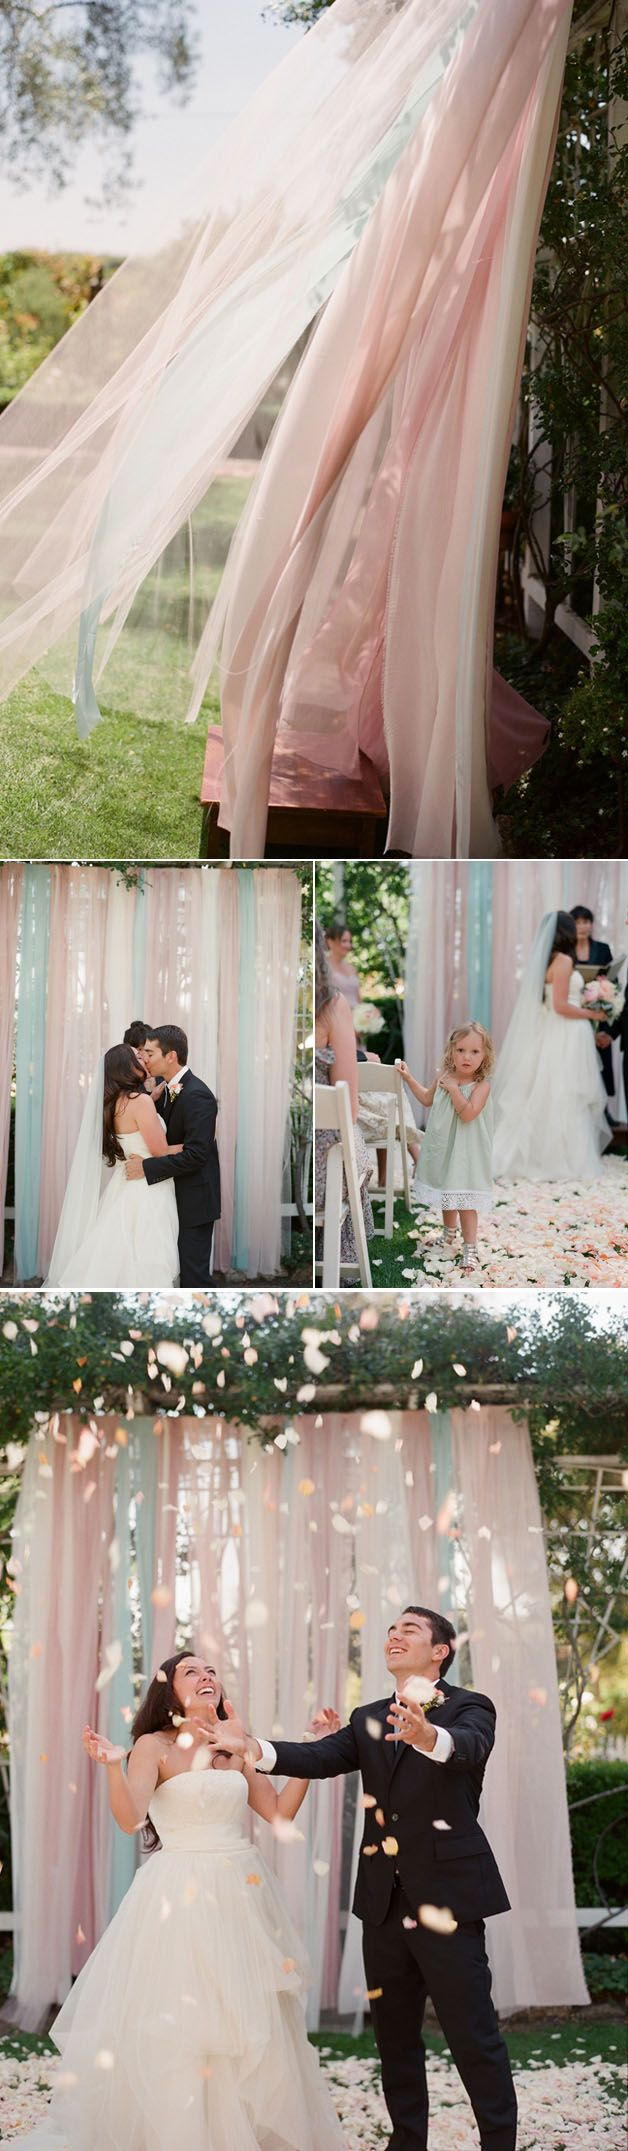 For the ceremony, the bride made a backdrop of floaty pink and aqua fabric, that swayed in the breeze…